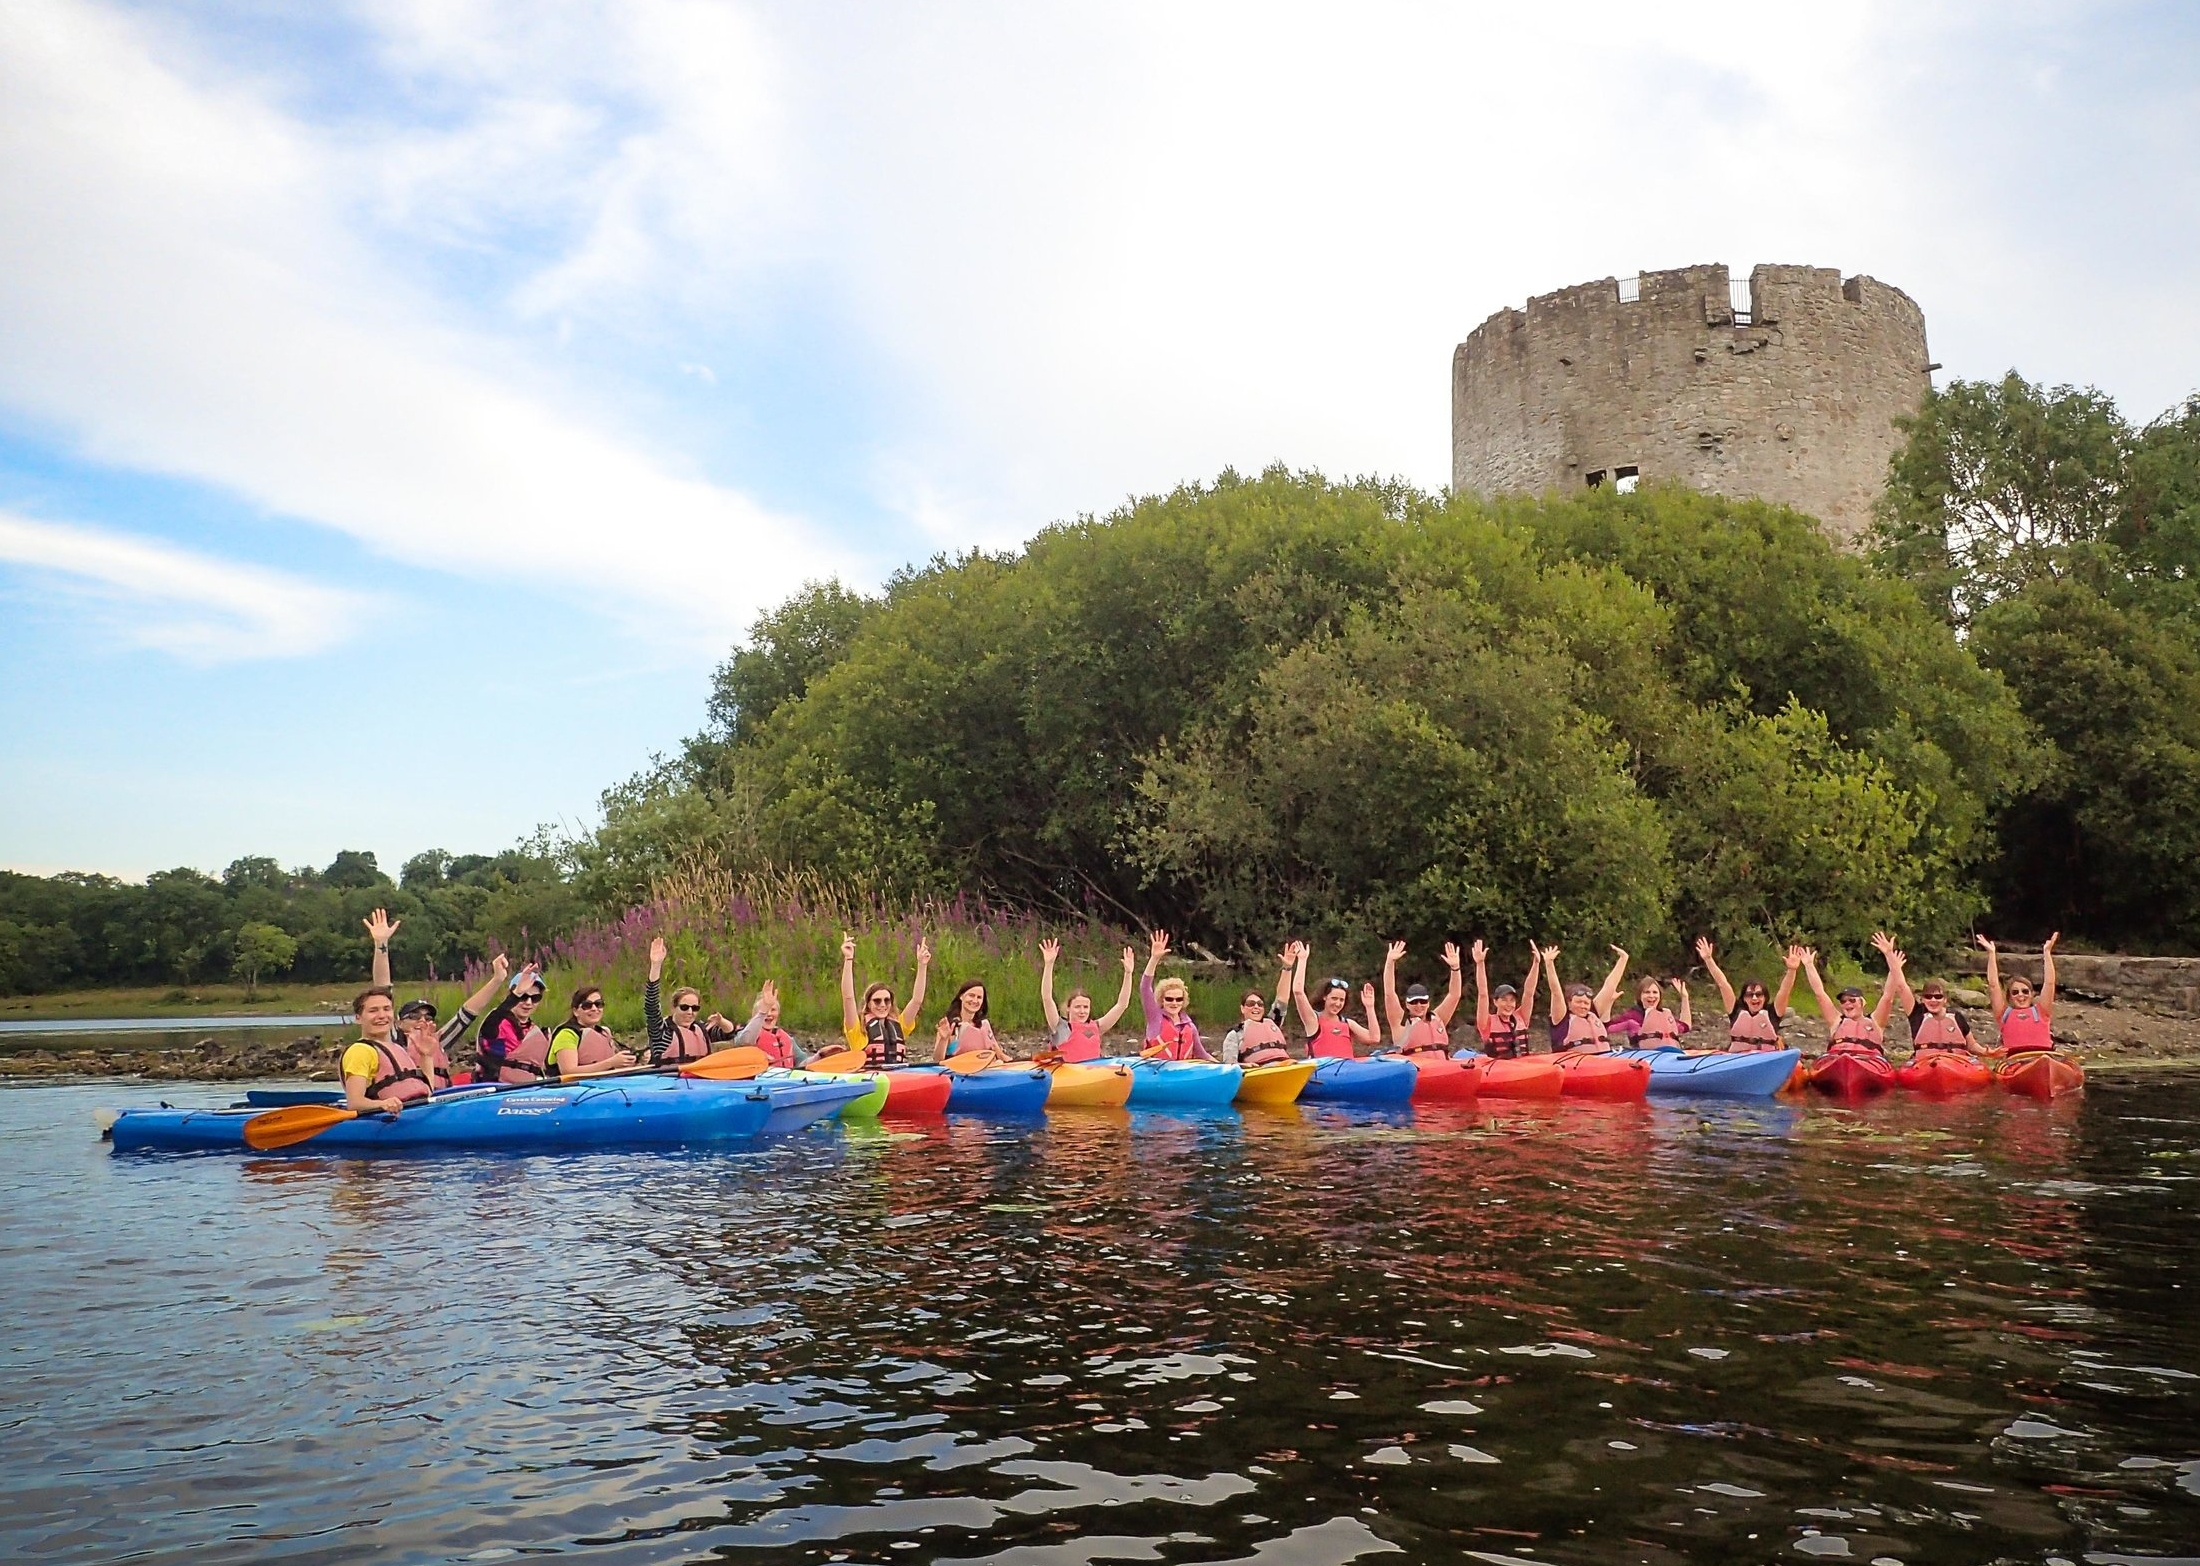 Guided Kayak Tour - If you wish to get the best possible experience while exploring Oughter Castle we highly recommend a Guided Kayak Tour. Paddle out to the castle and discover the history behind its walls with an experienced guide by your side, while also getting closer to the wildlife and the landscape.